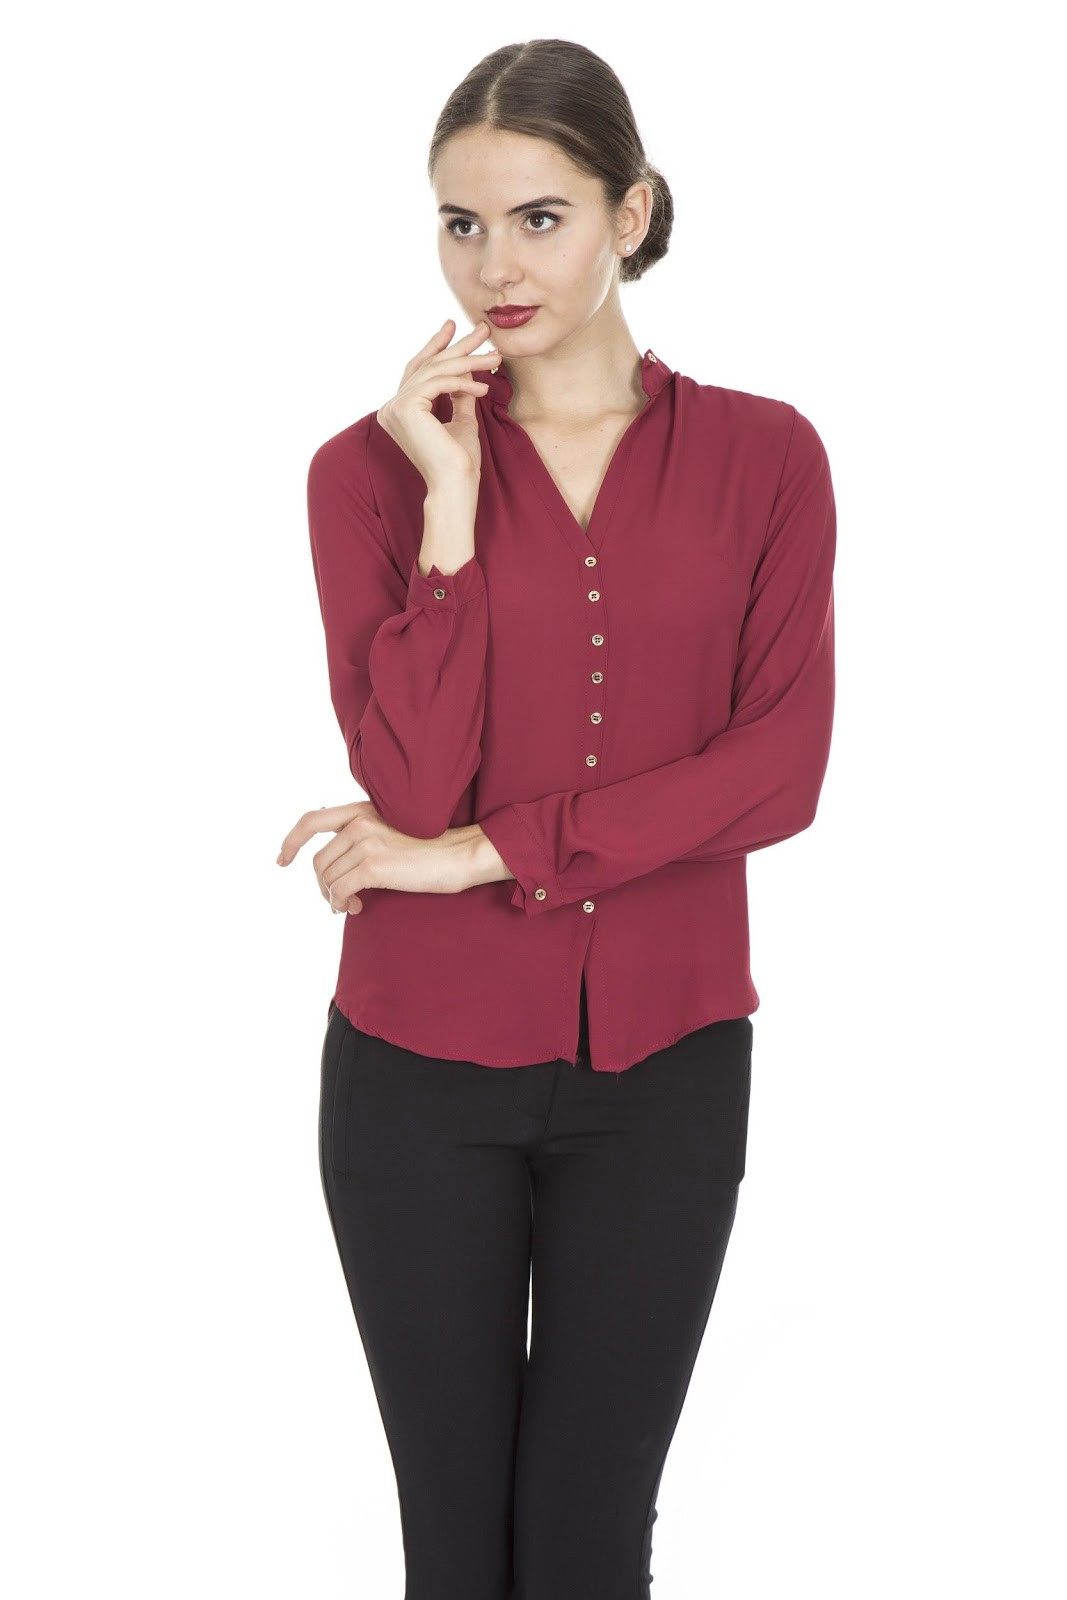 8ae86520134 Cardigans and button-down shirts can serve as your go-to pieces for  professional and business casual wear. These tops also have a fitted look  and fit your ...